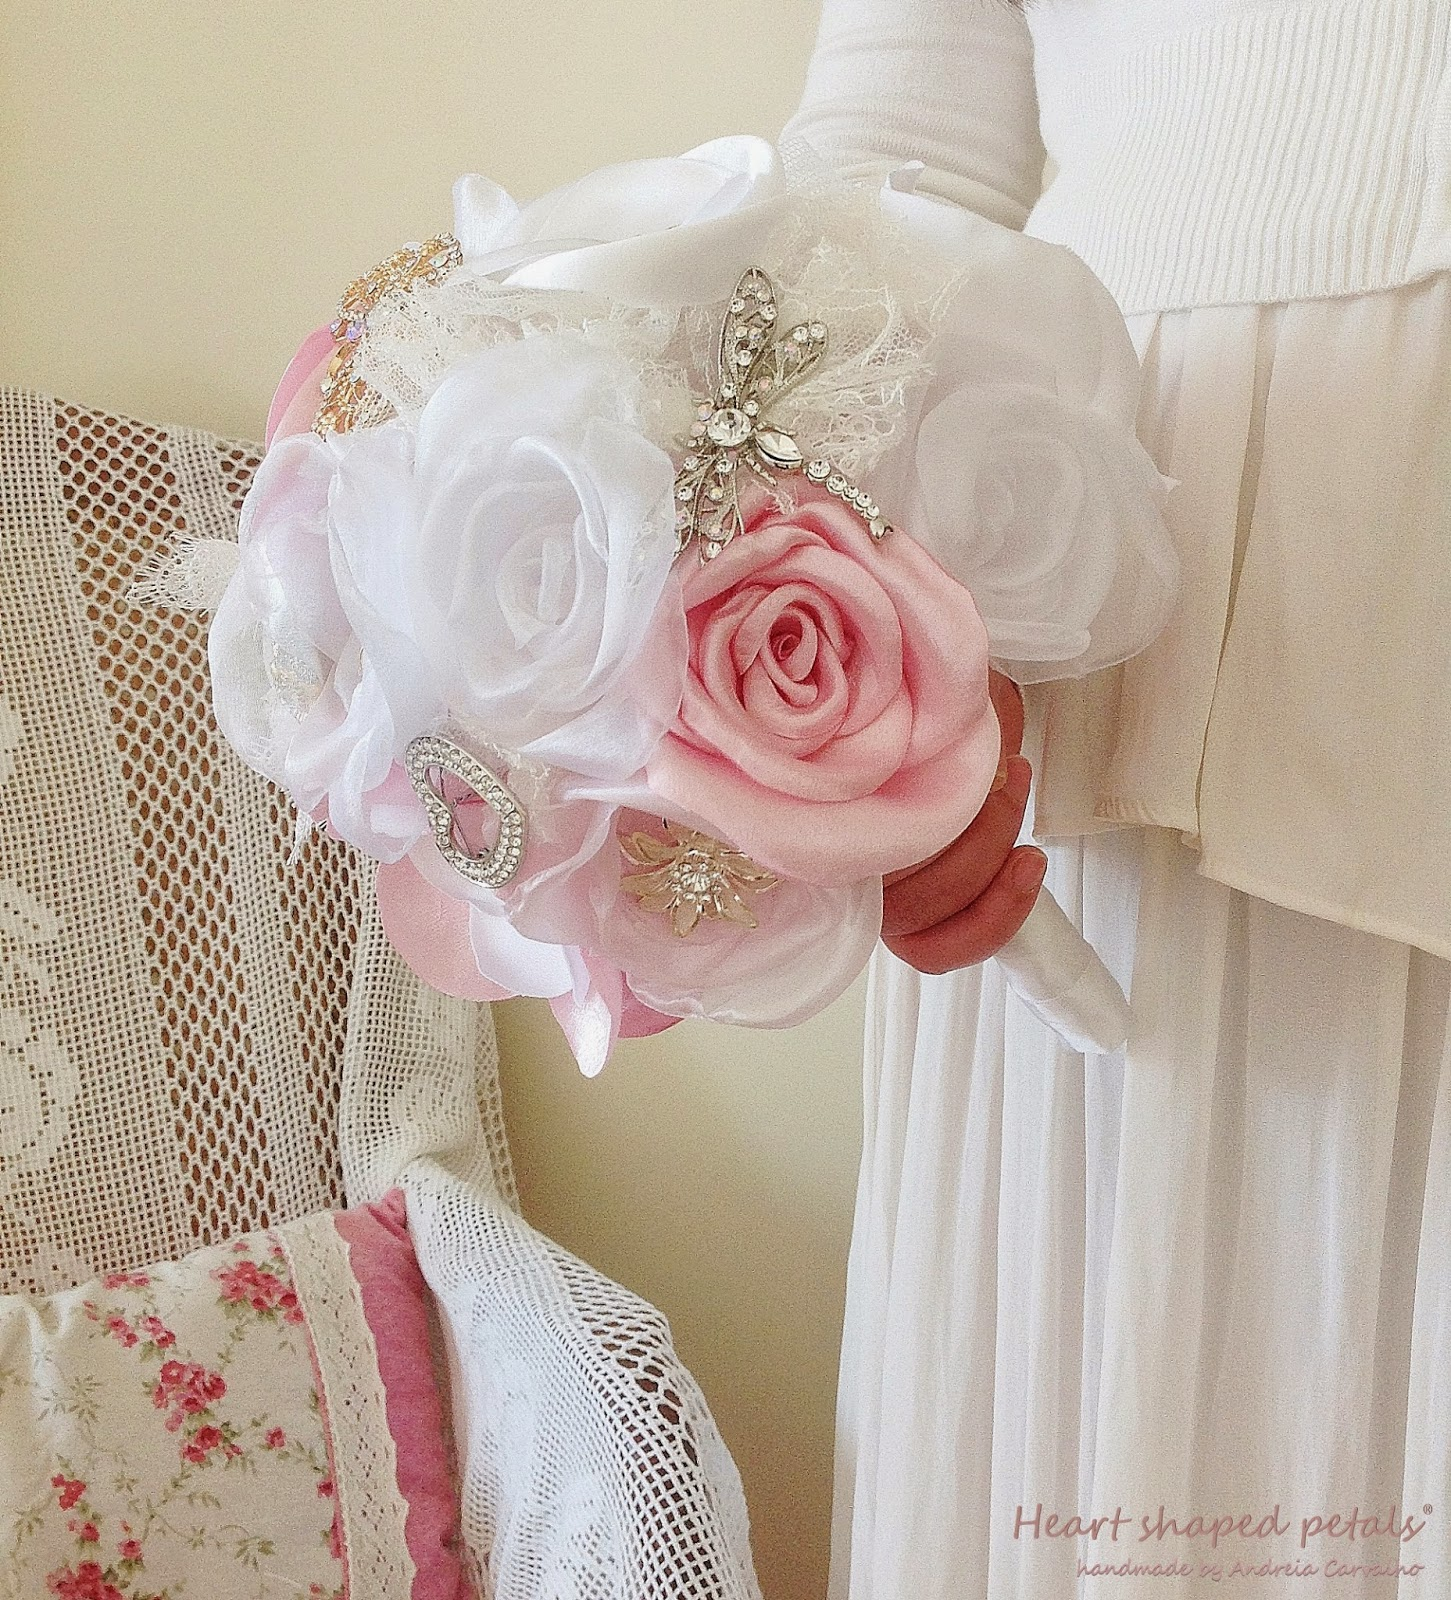 Rose and gardenia bouquet